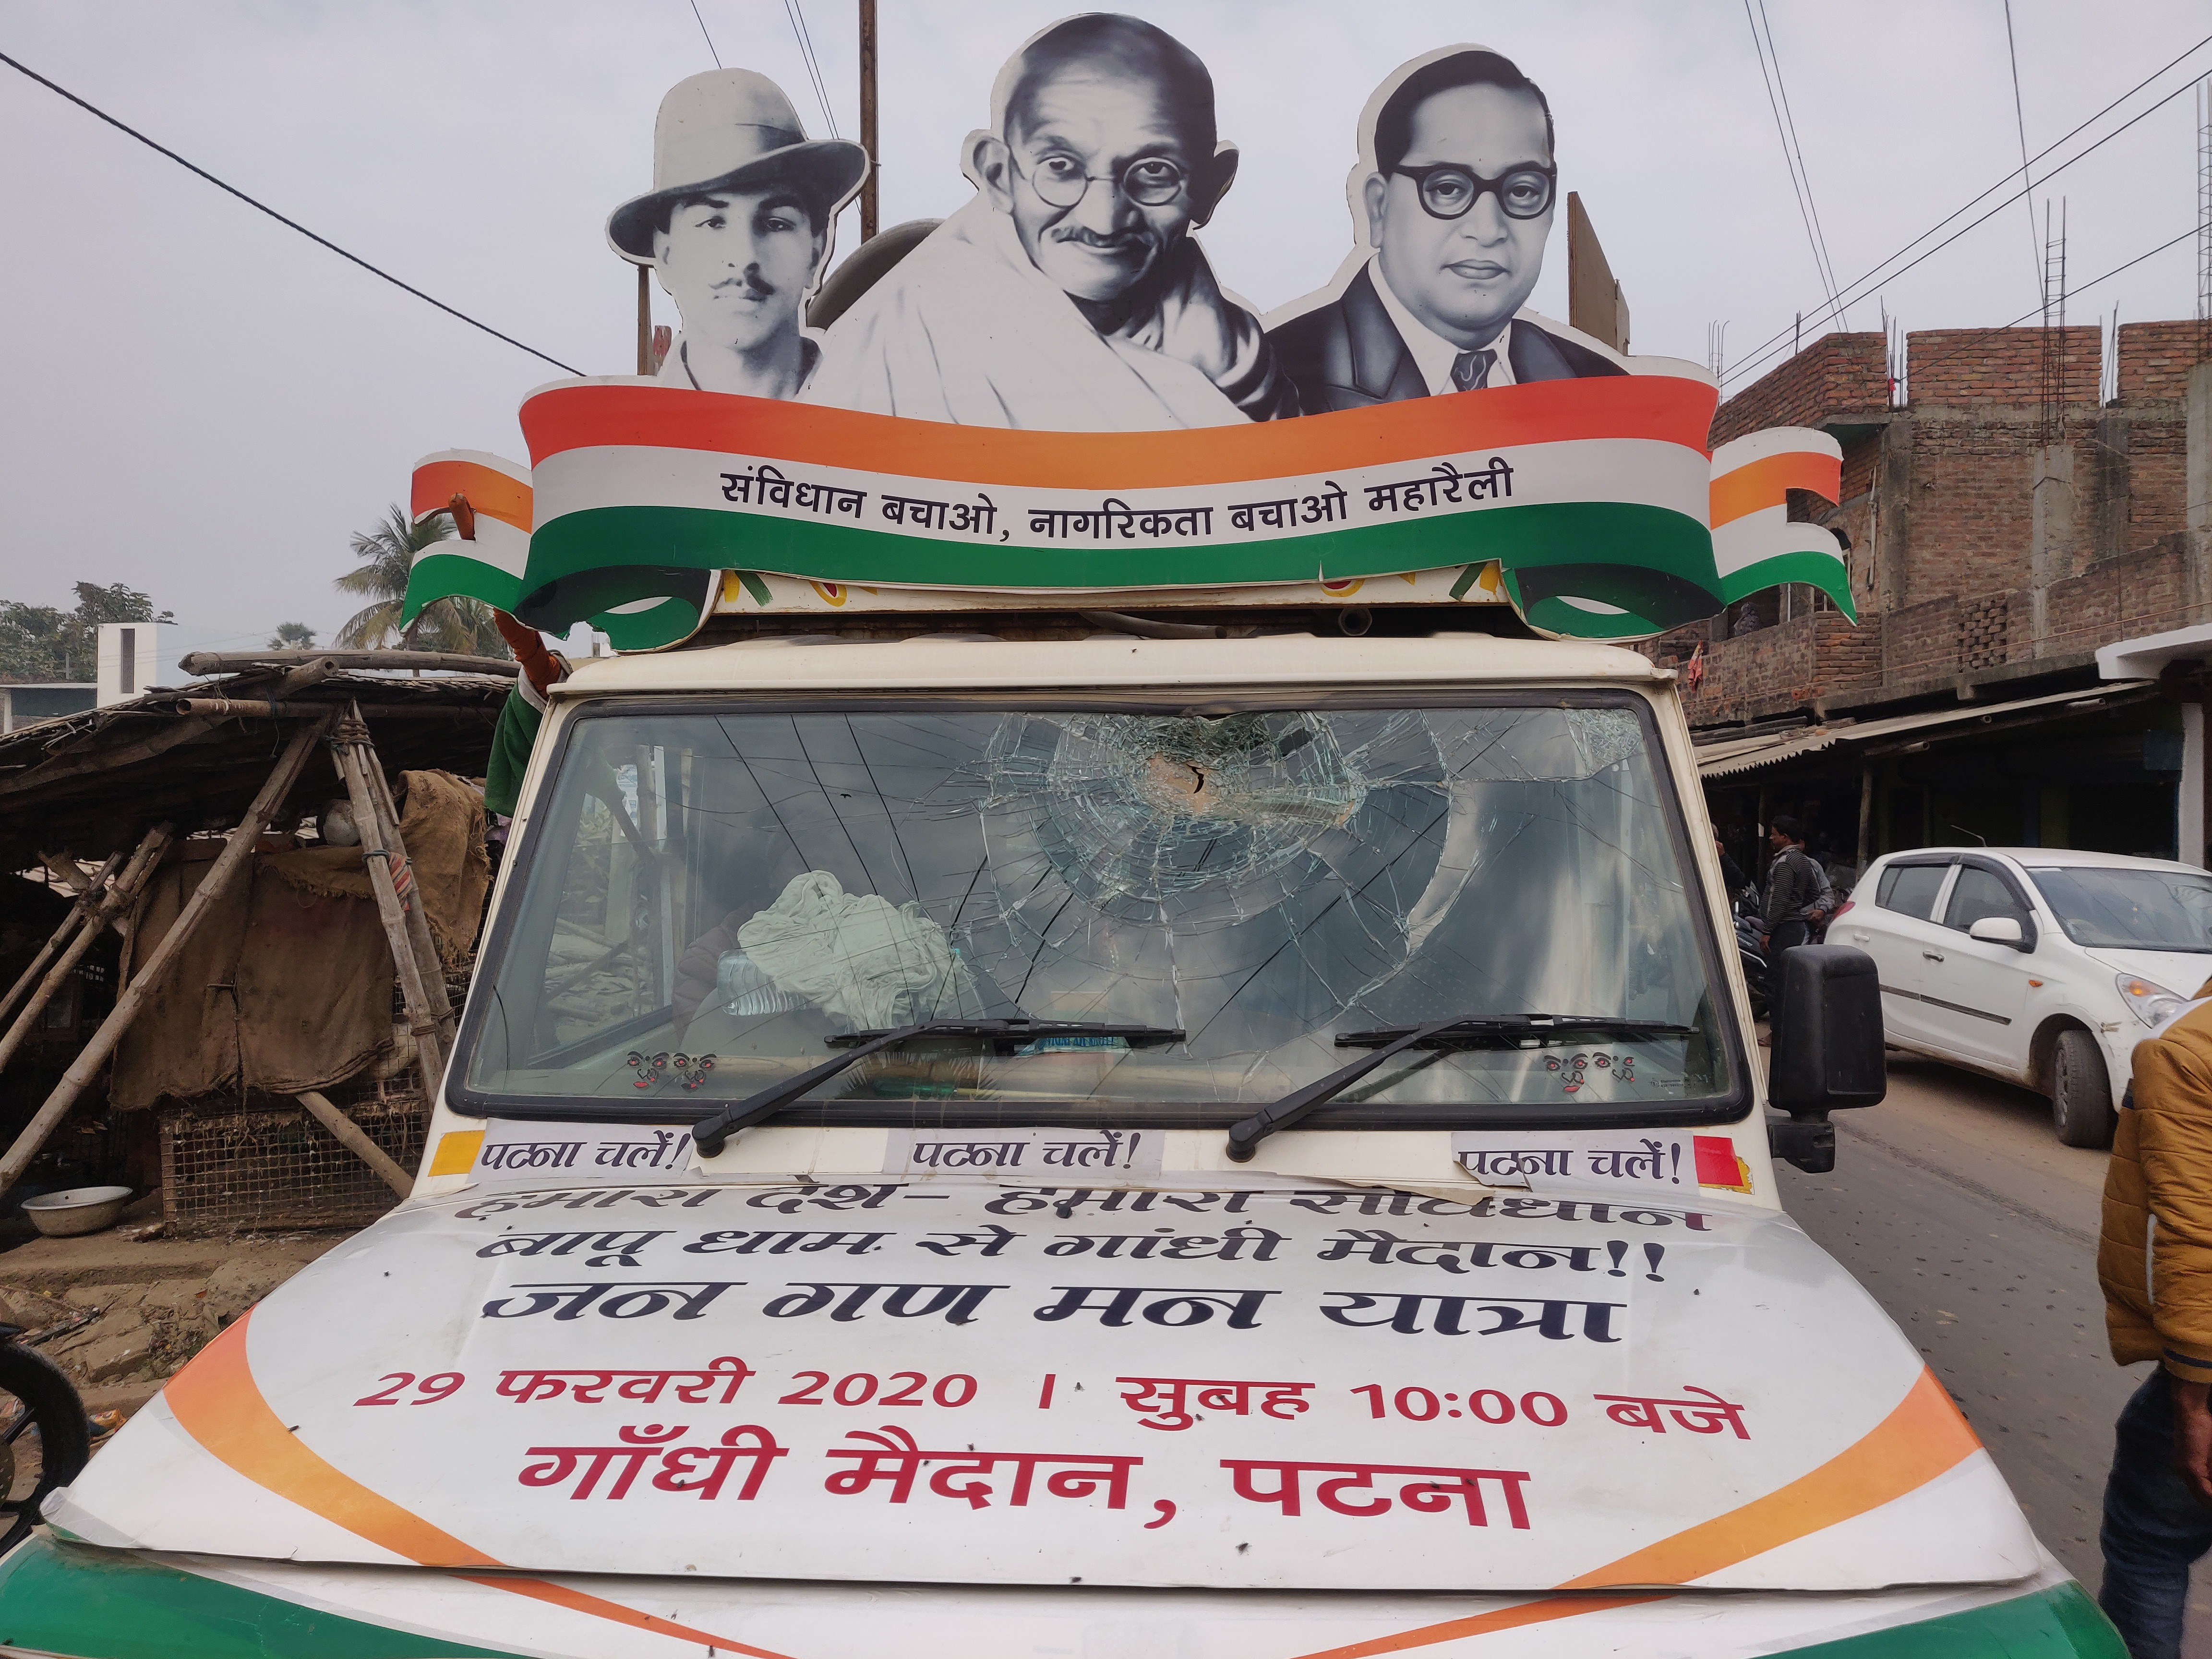 Campaigning car stoned by opponents, anti-CAA yatra in Bhagalpur, India, 2020 | J-T.M.